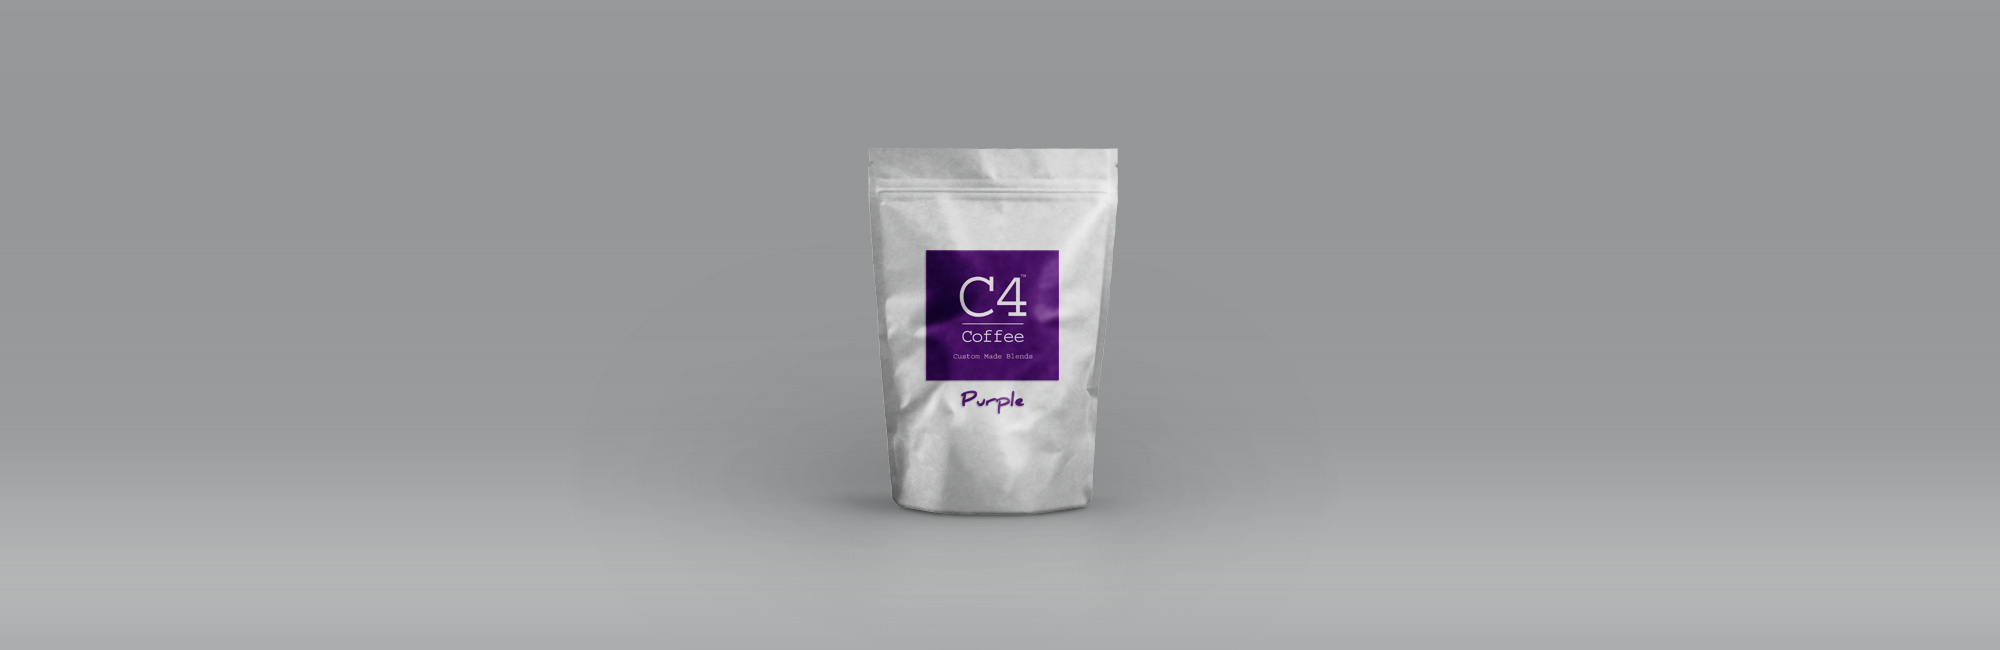 Packaging C4